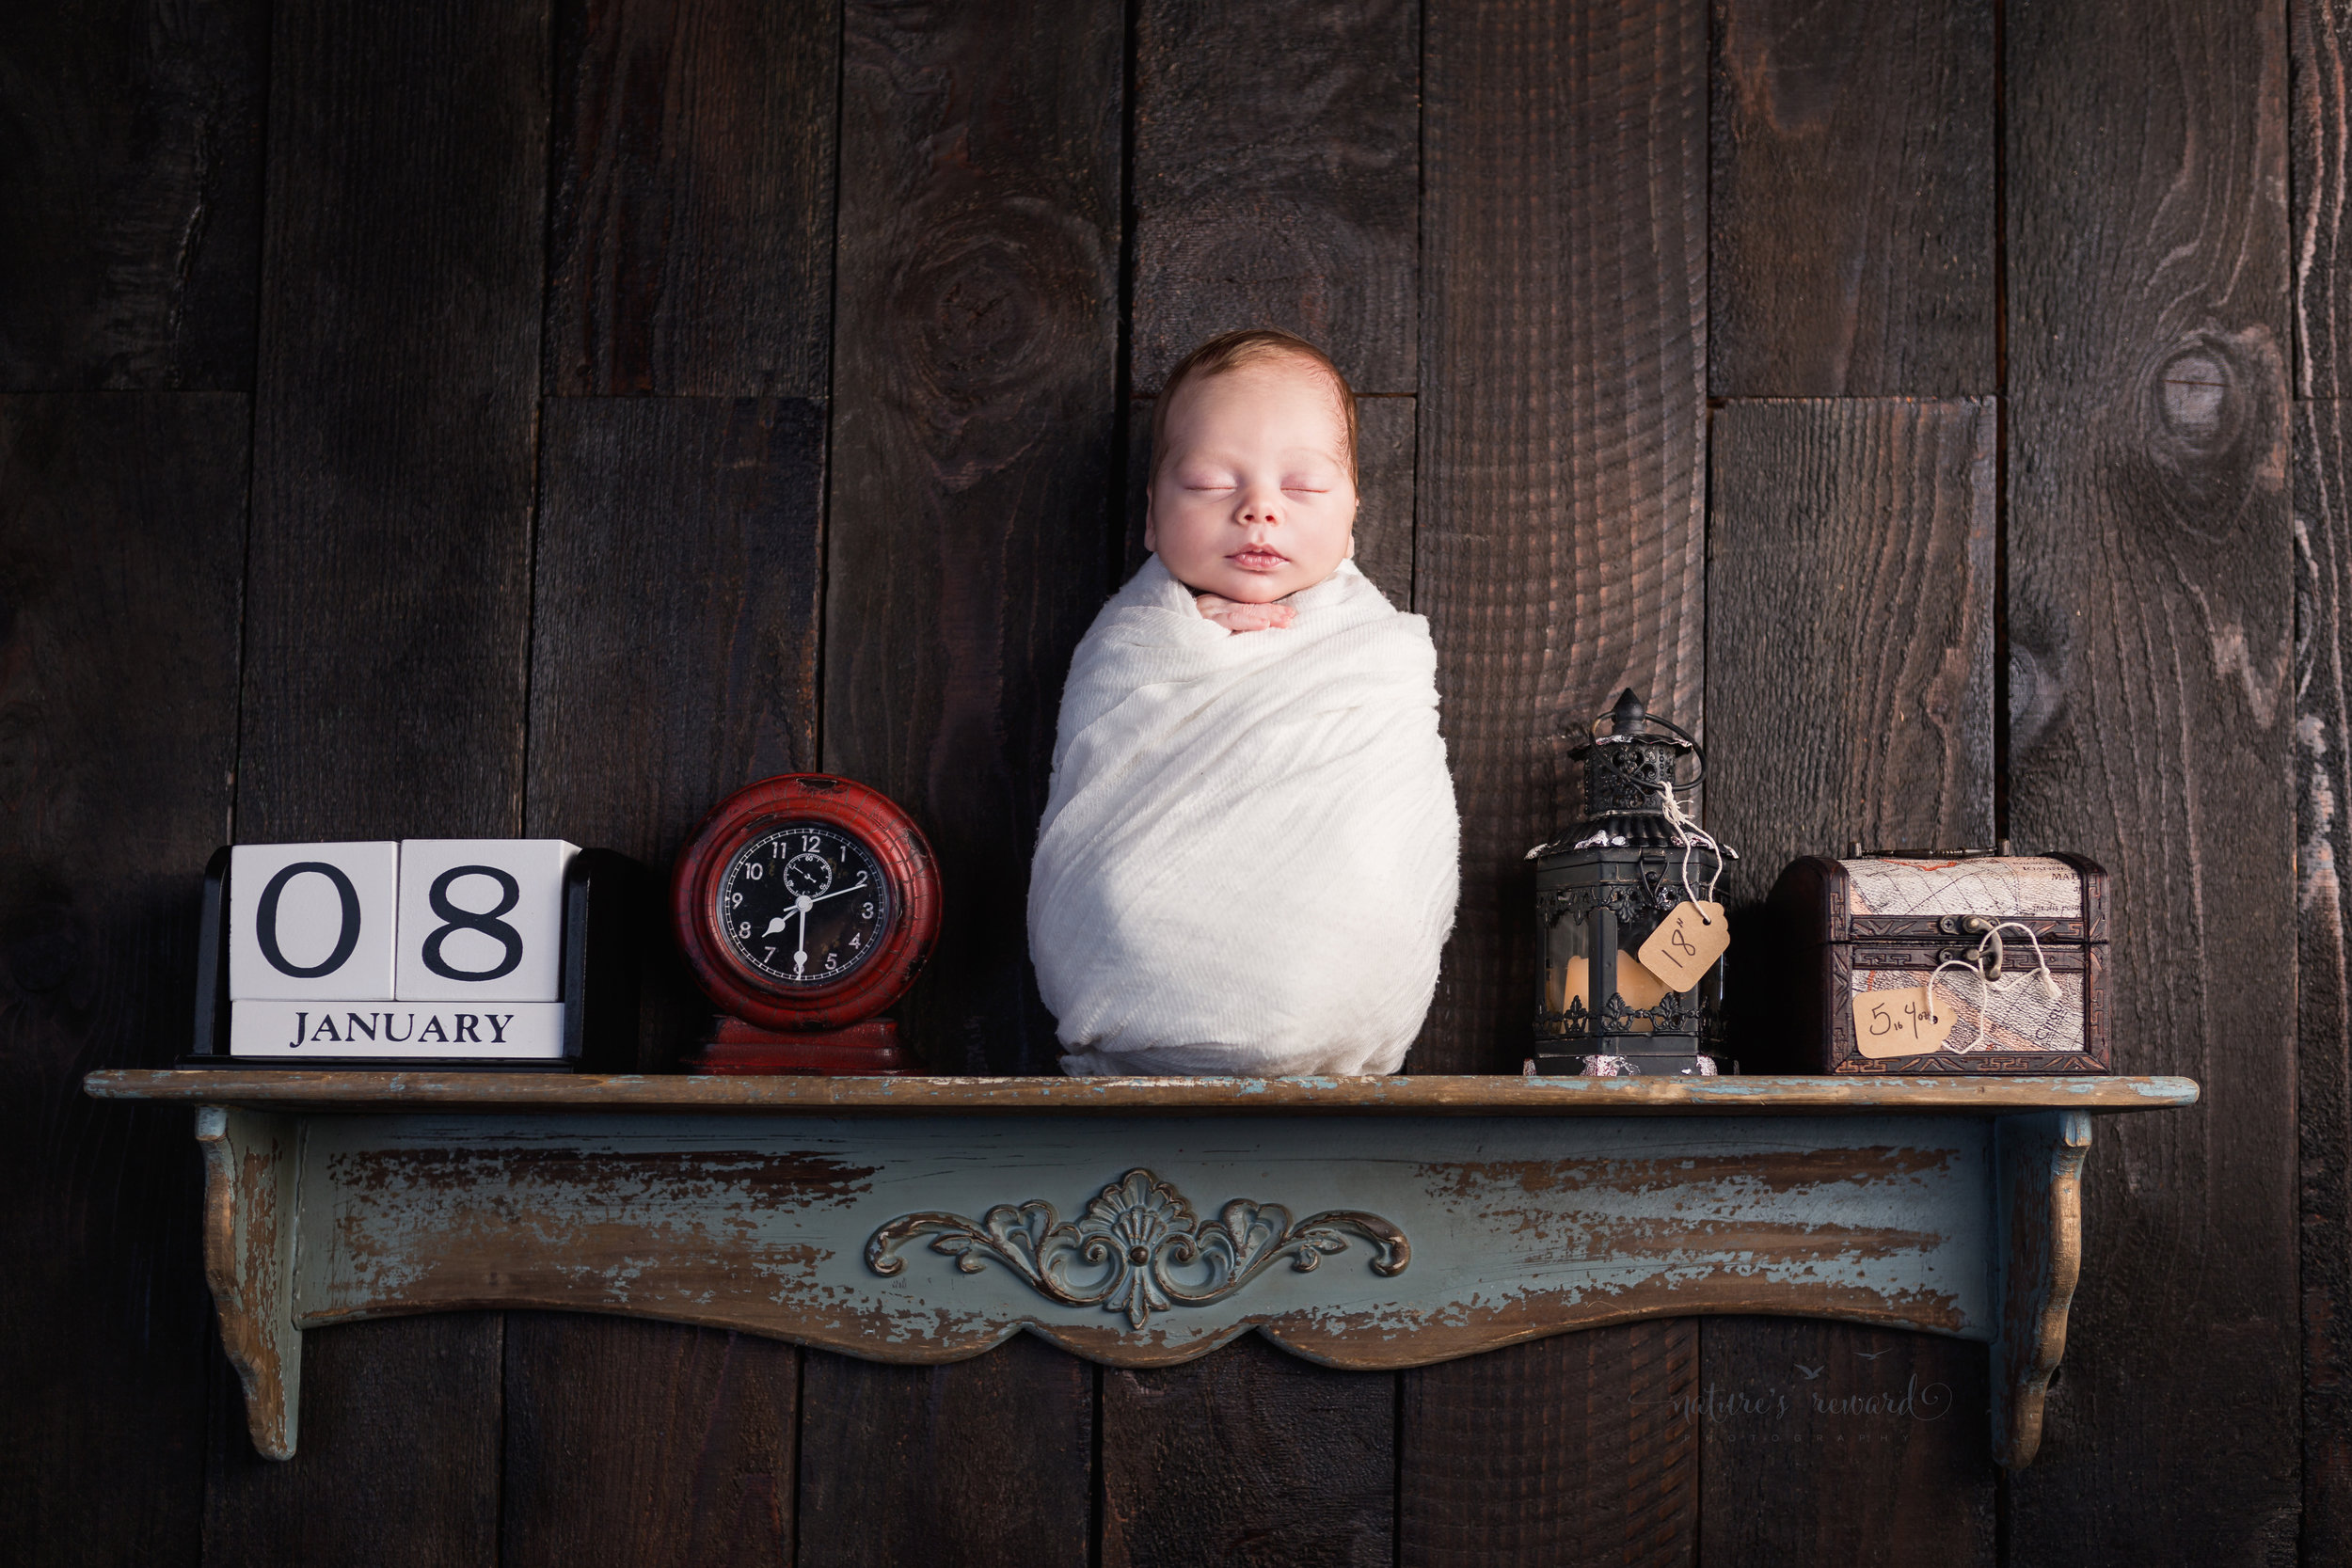 Baby on a shelf swaddled in white his birth story told through items on the shelf by Southern California newborn and family photographer Nature's Reward Photography